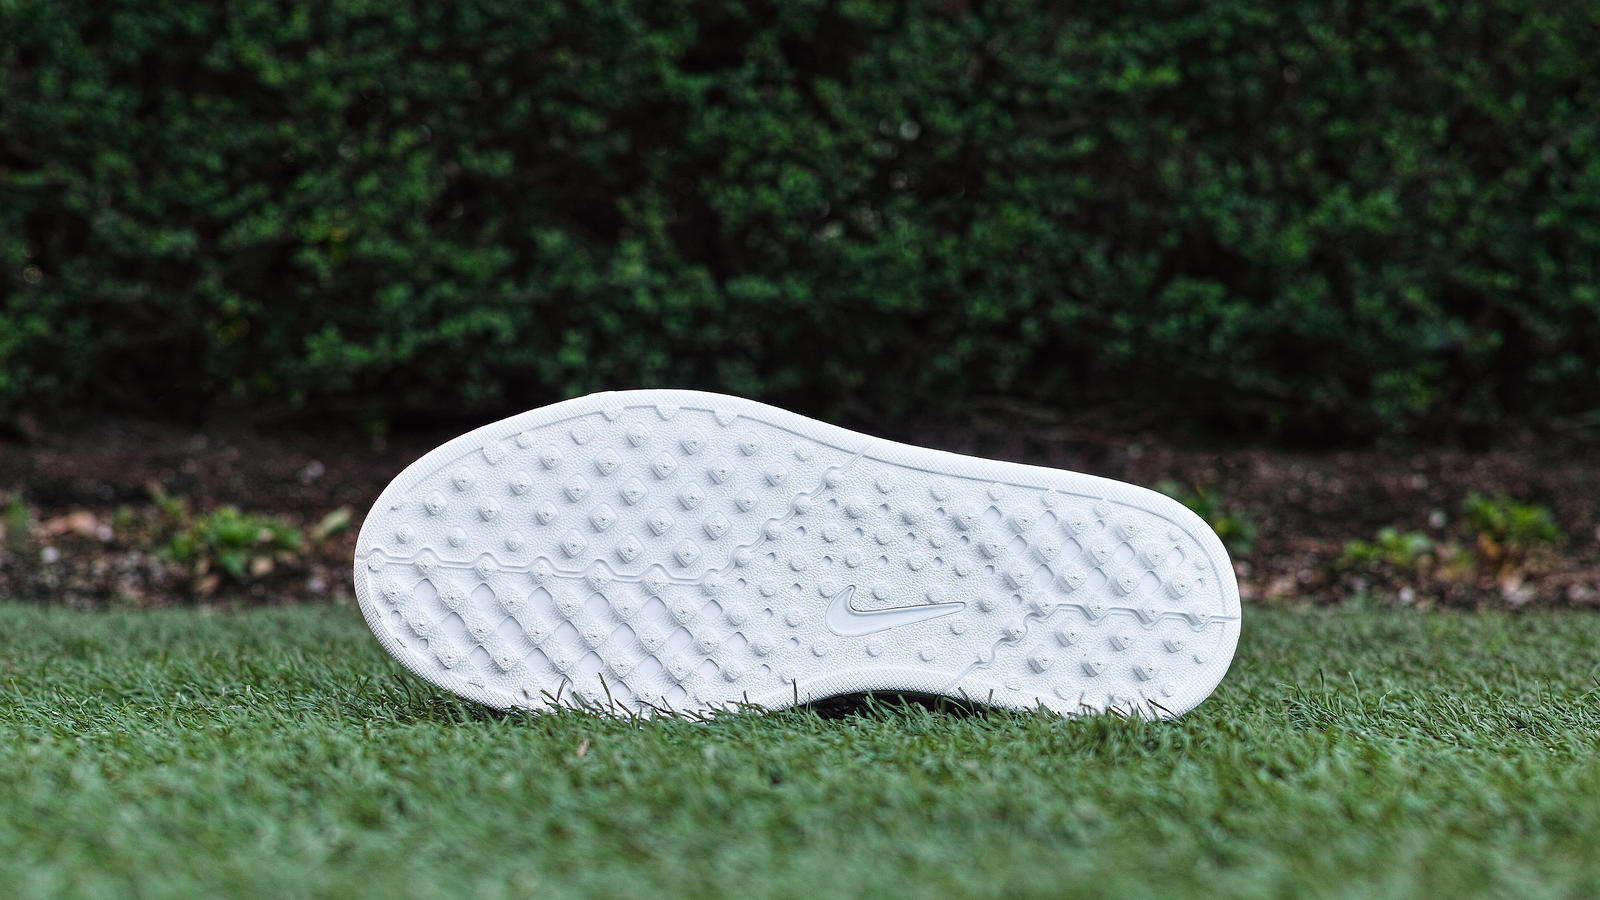 Nike lunarforce 1g outsole hd 1600